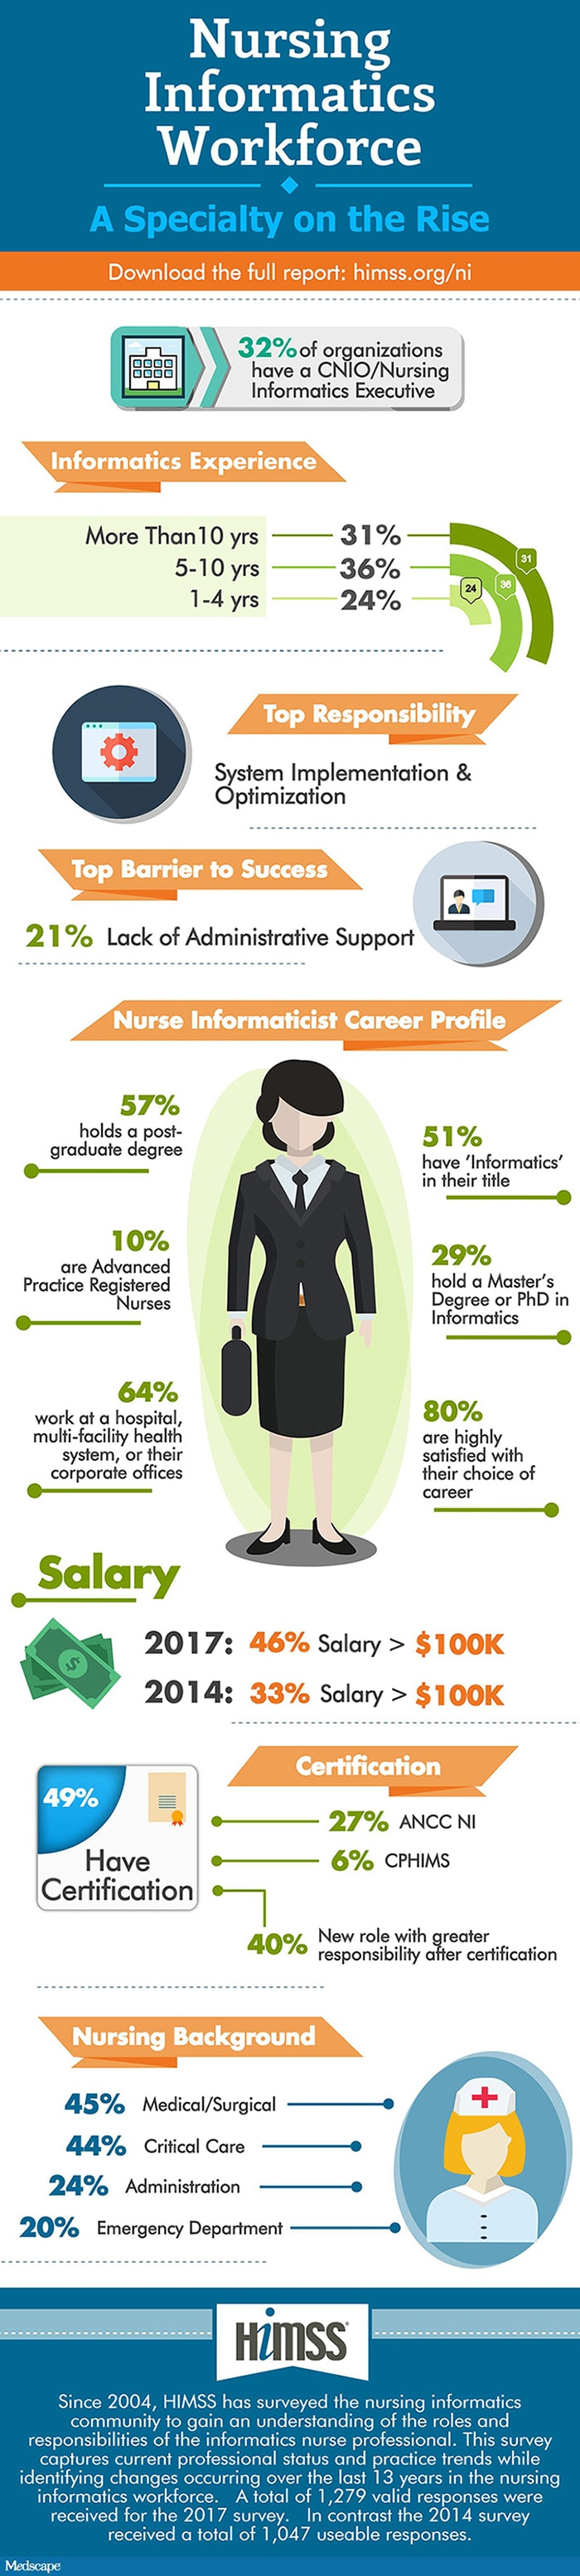 What Do Informatics Nurses Do